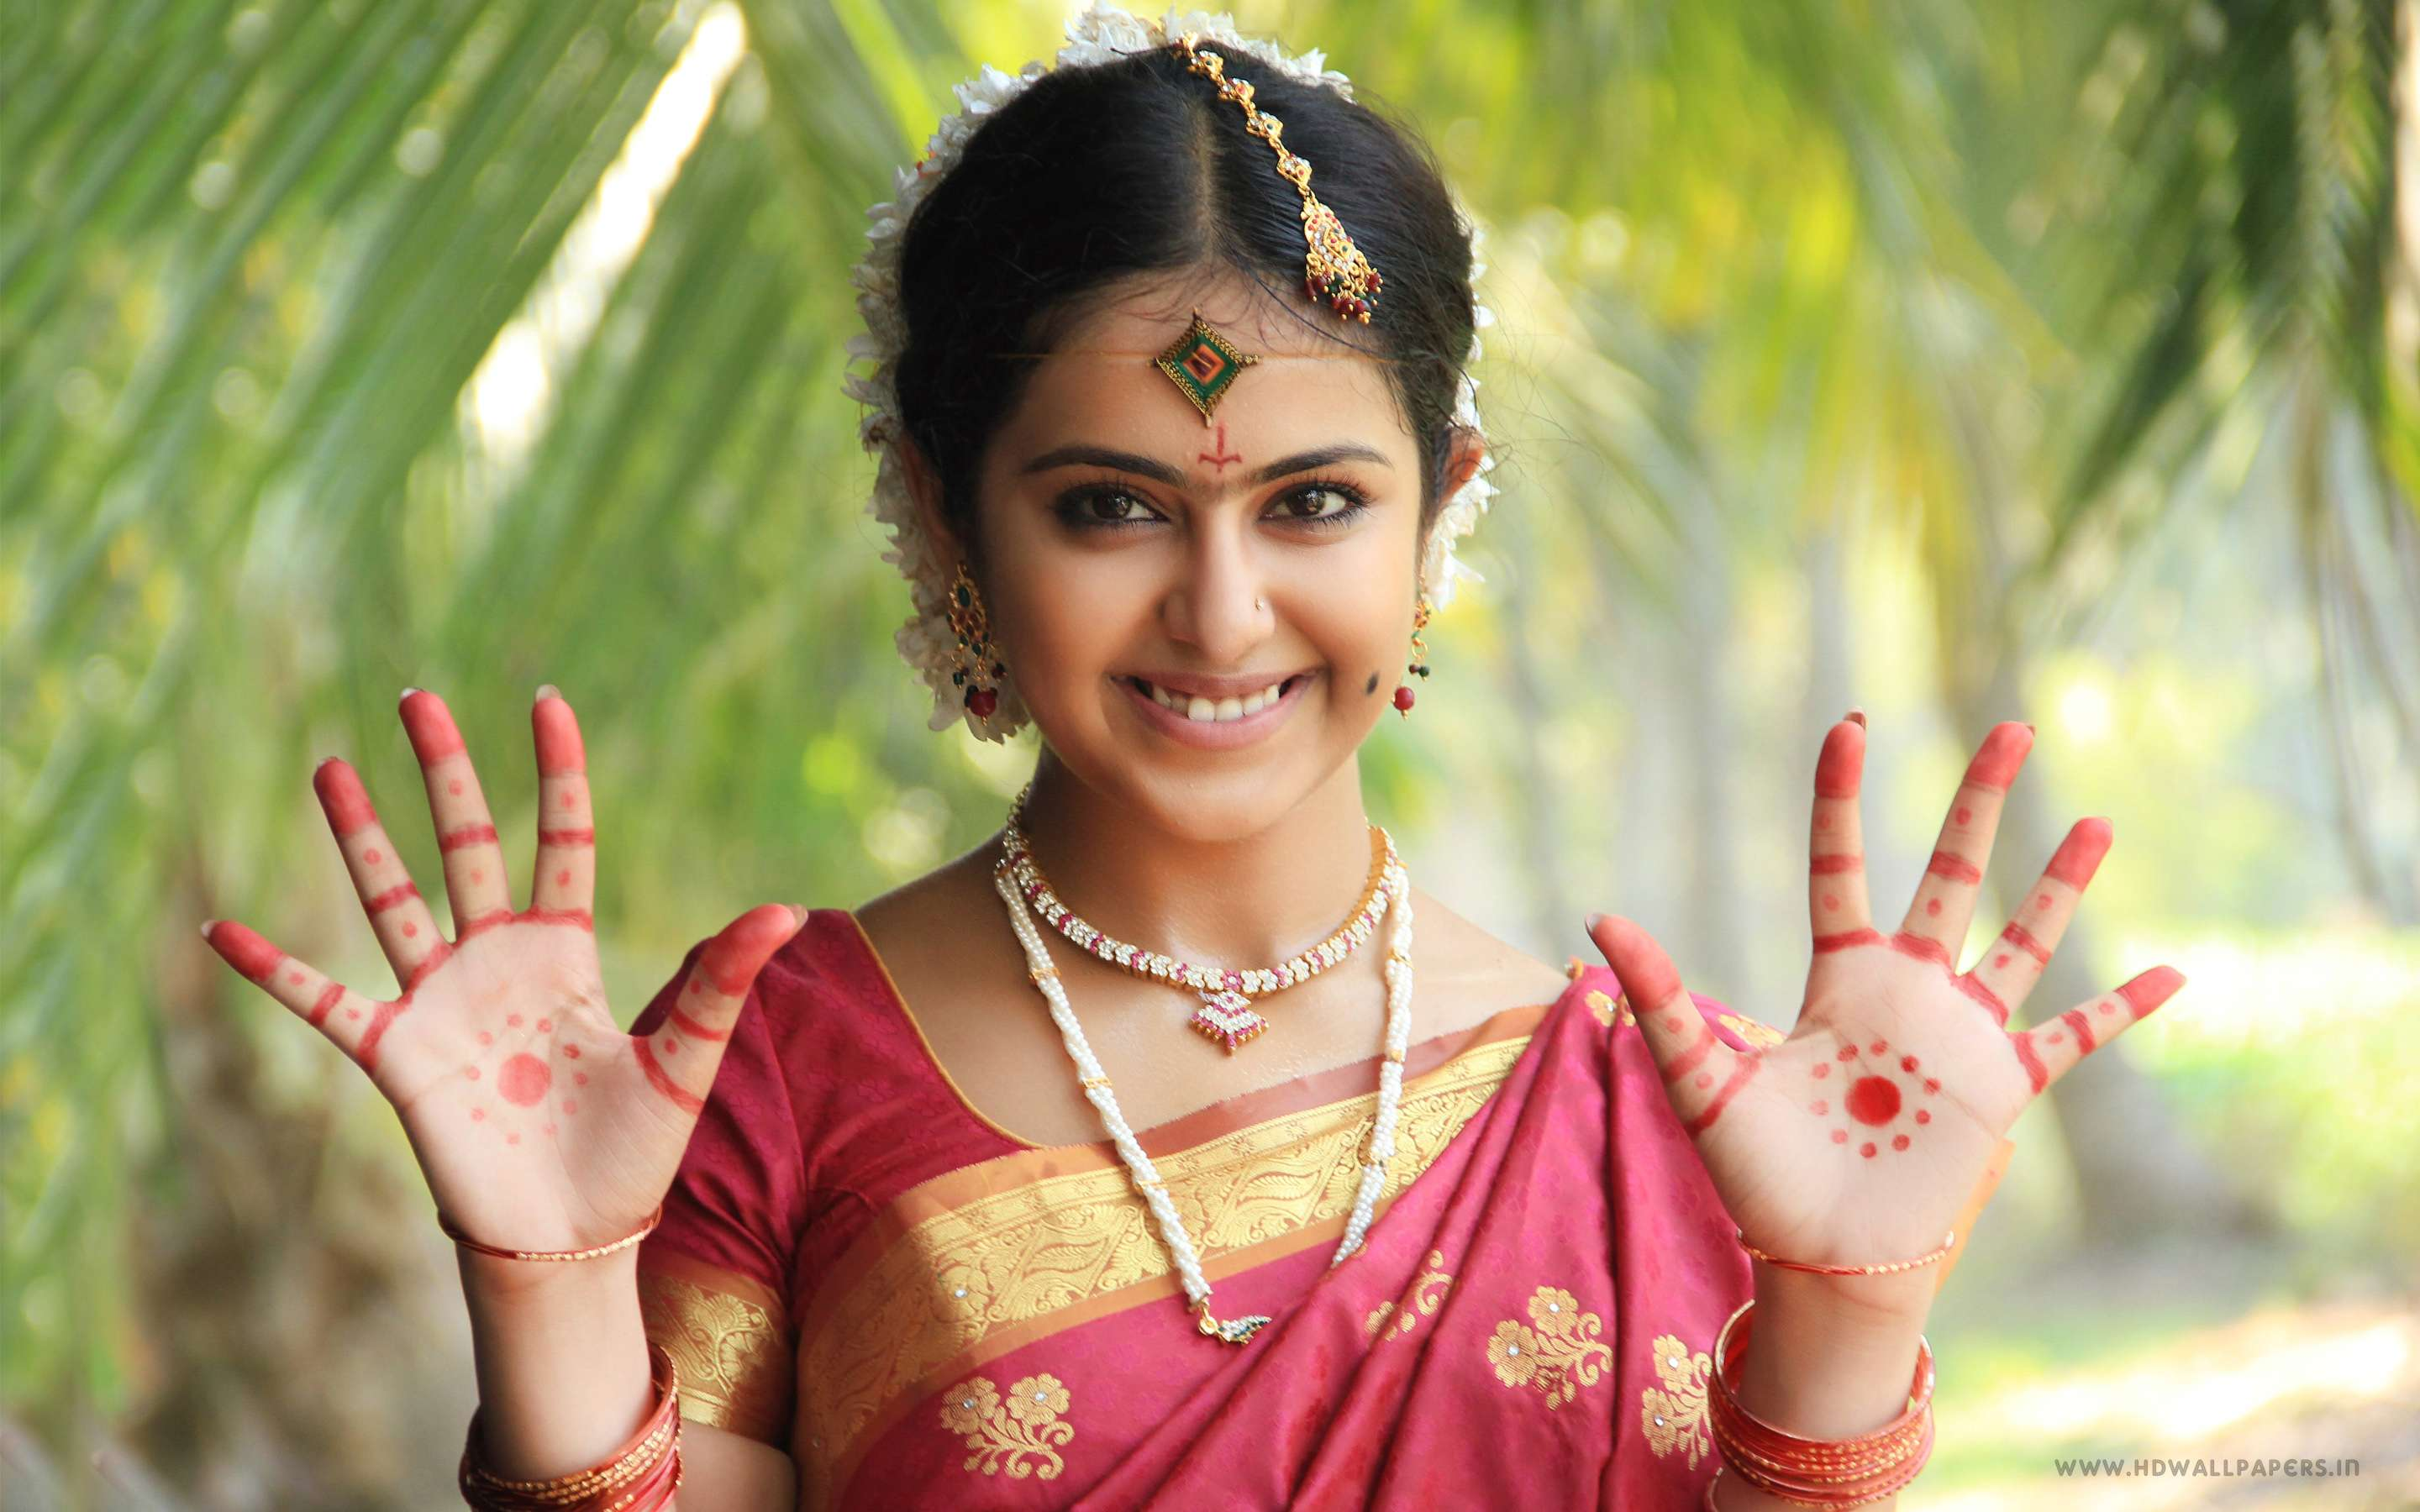 Hindu God Wallpaper Full Hd Actress Avika Gor Hd Wallpapers